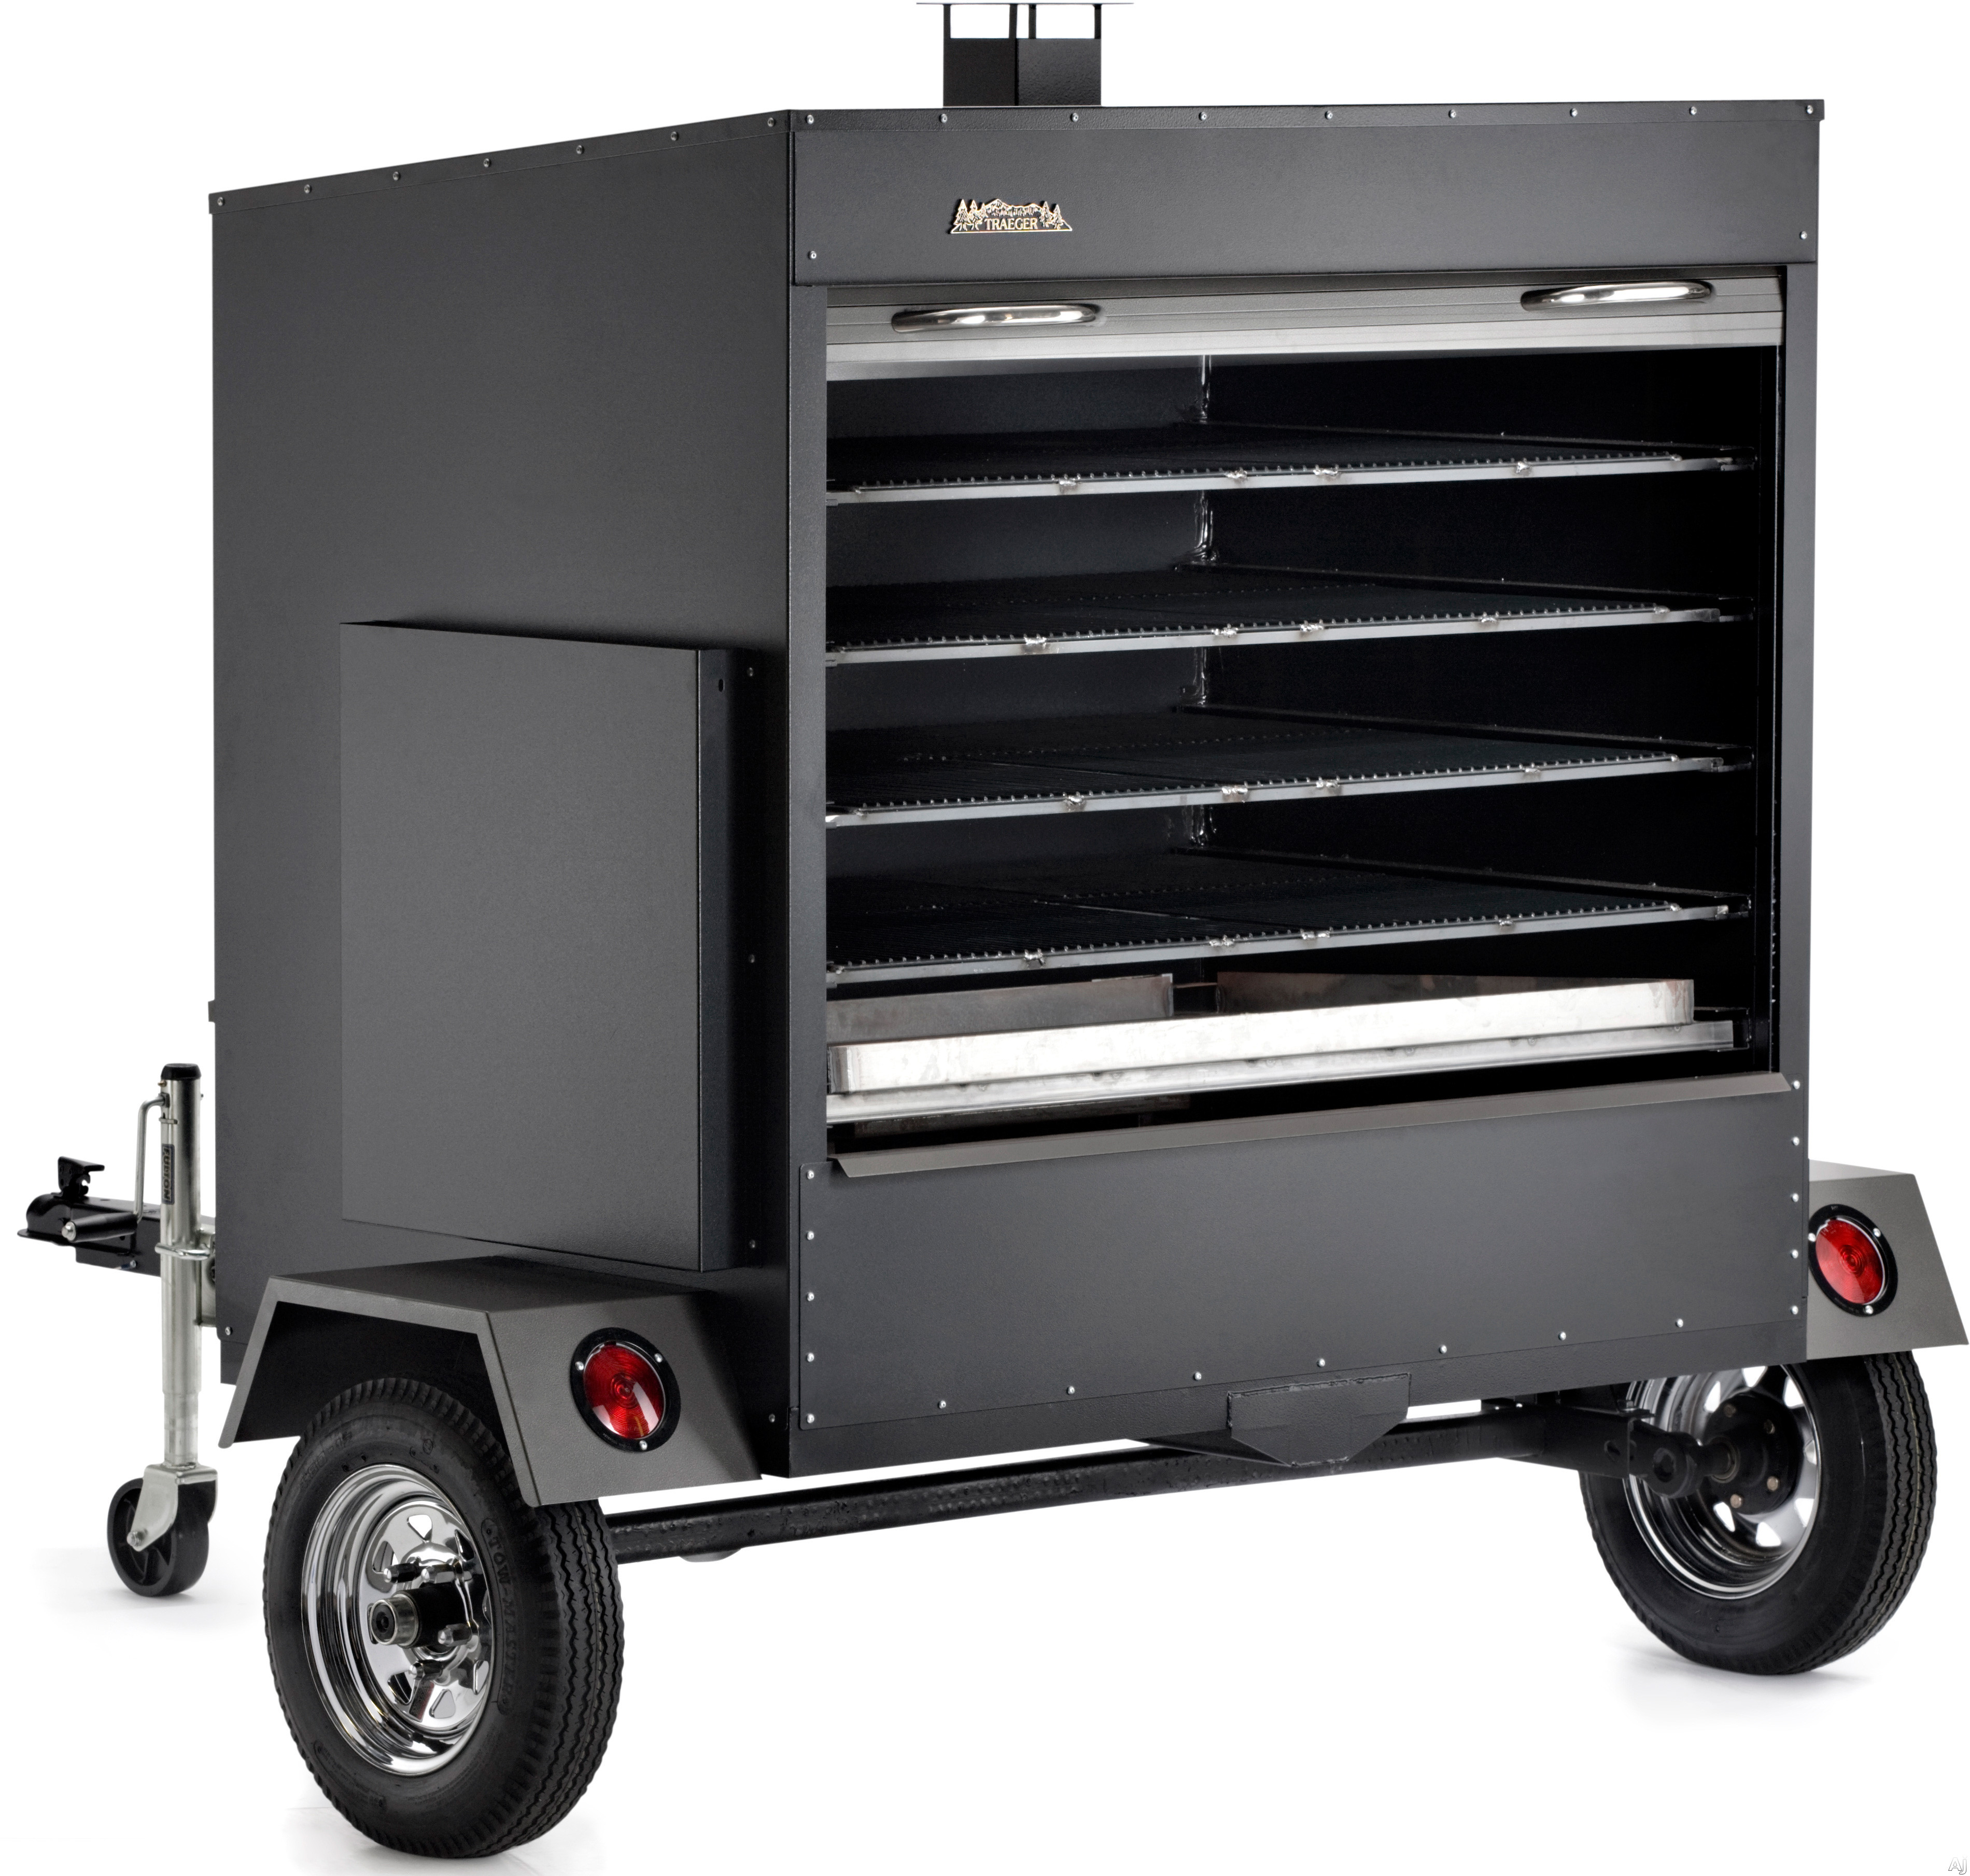 click for Full Info on this Traeger COM200 Large Commercial Trailer Wood Pellet Grill with 7 260 sq in Grilling Area  Loads Up To 224 Chicken Quarters  Digital Thermostat and Runs Off Standard 110V Outlet